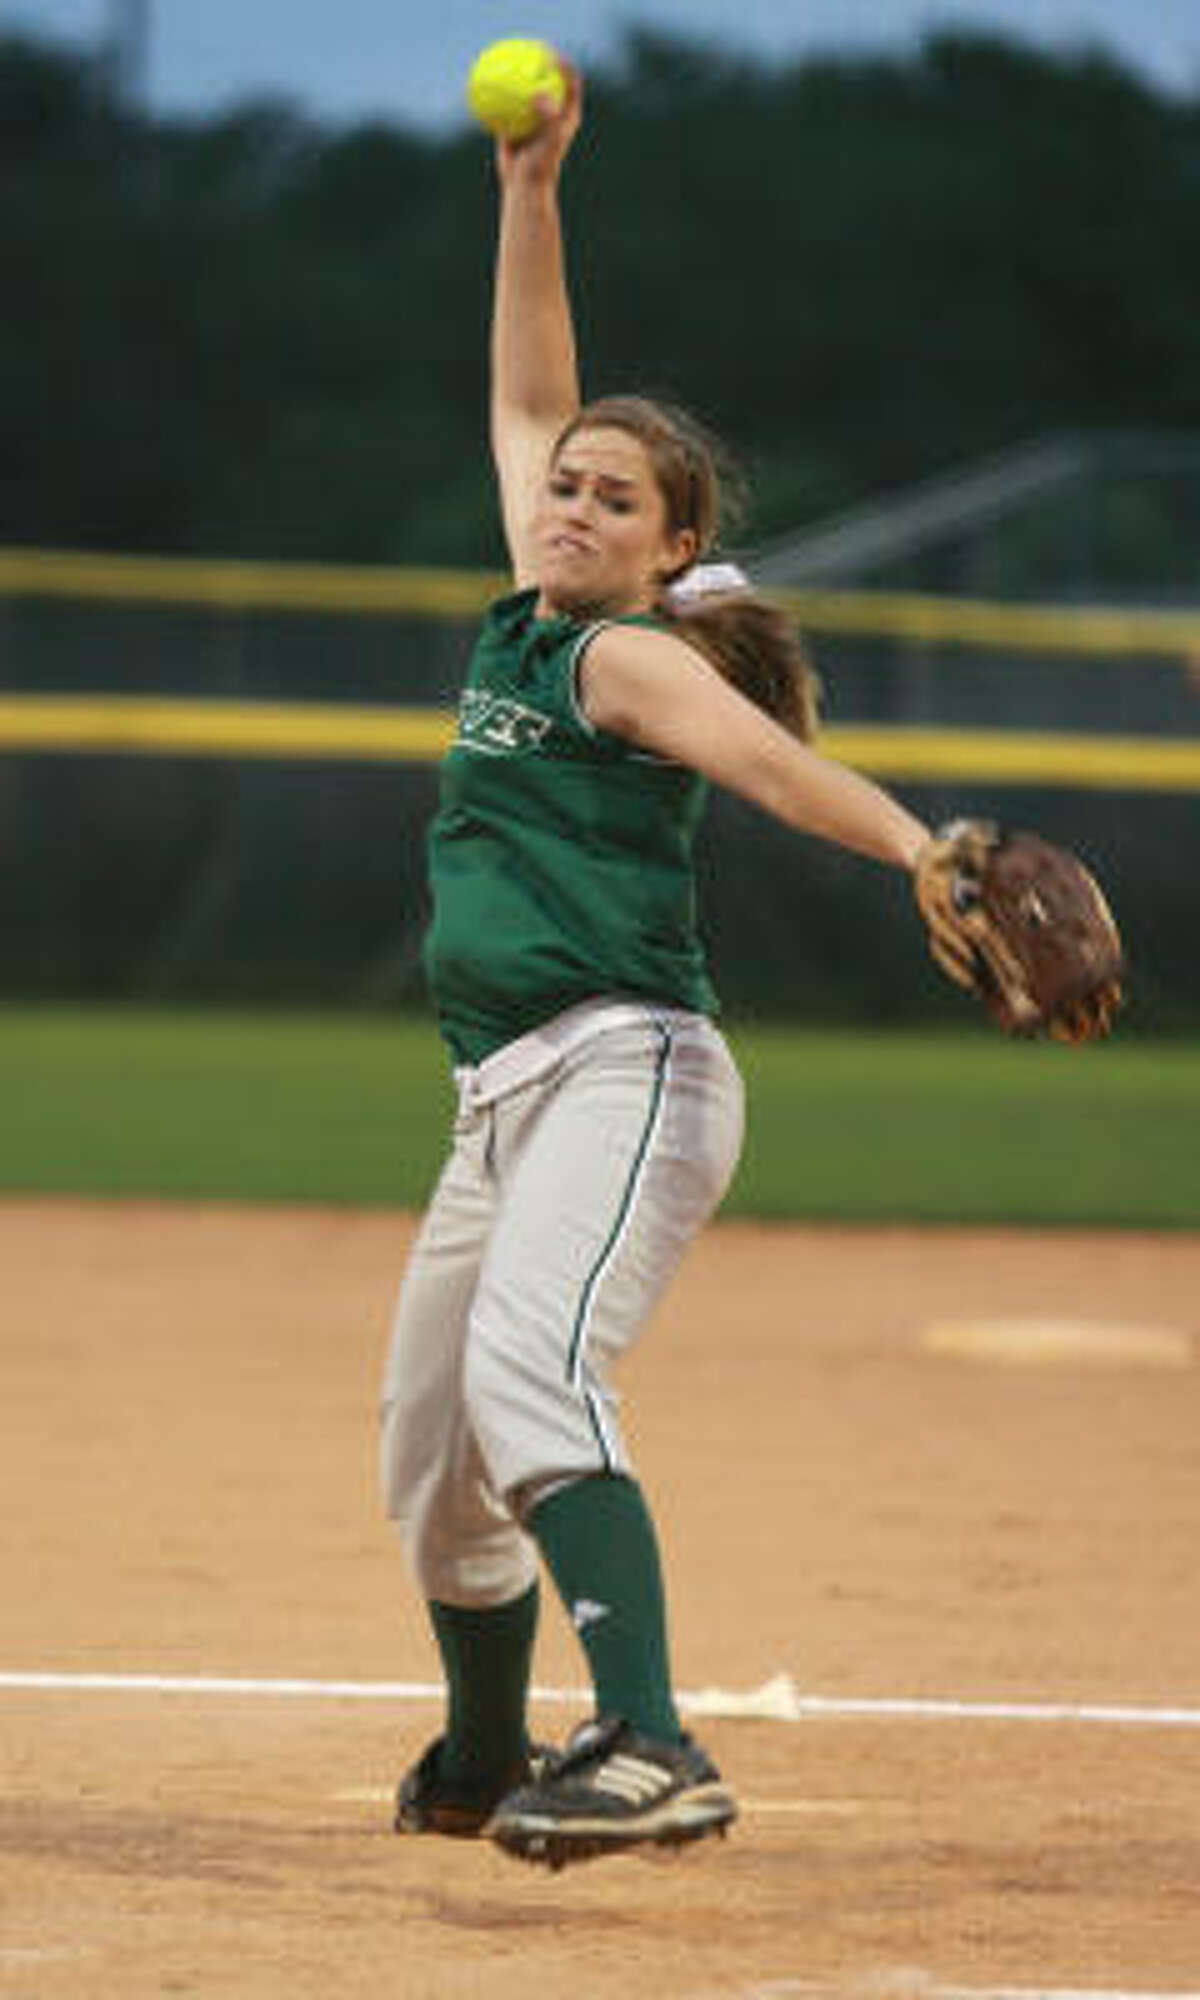 Rachel Fox , Pitcher, Junior Fort Bend Baptist Fox, who committed to the Texas Longhorns as a sophomore, was 28-1 last year to lead the Eagles to the TAPPS state title game. She had 354 strikeouts in 175 innings.